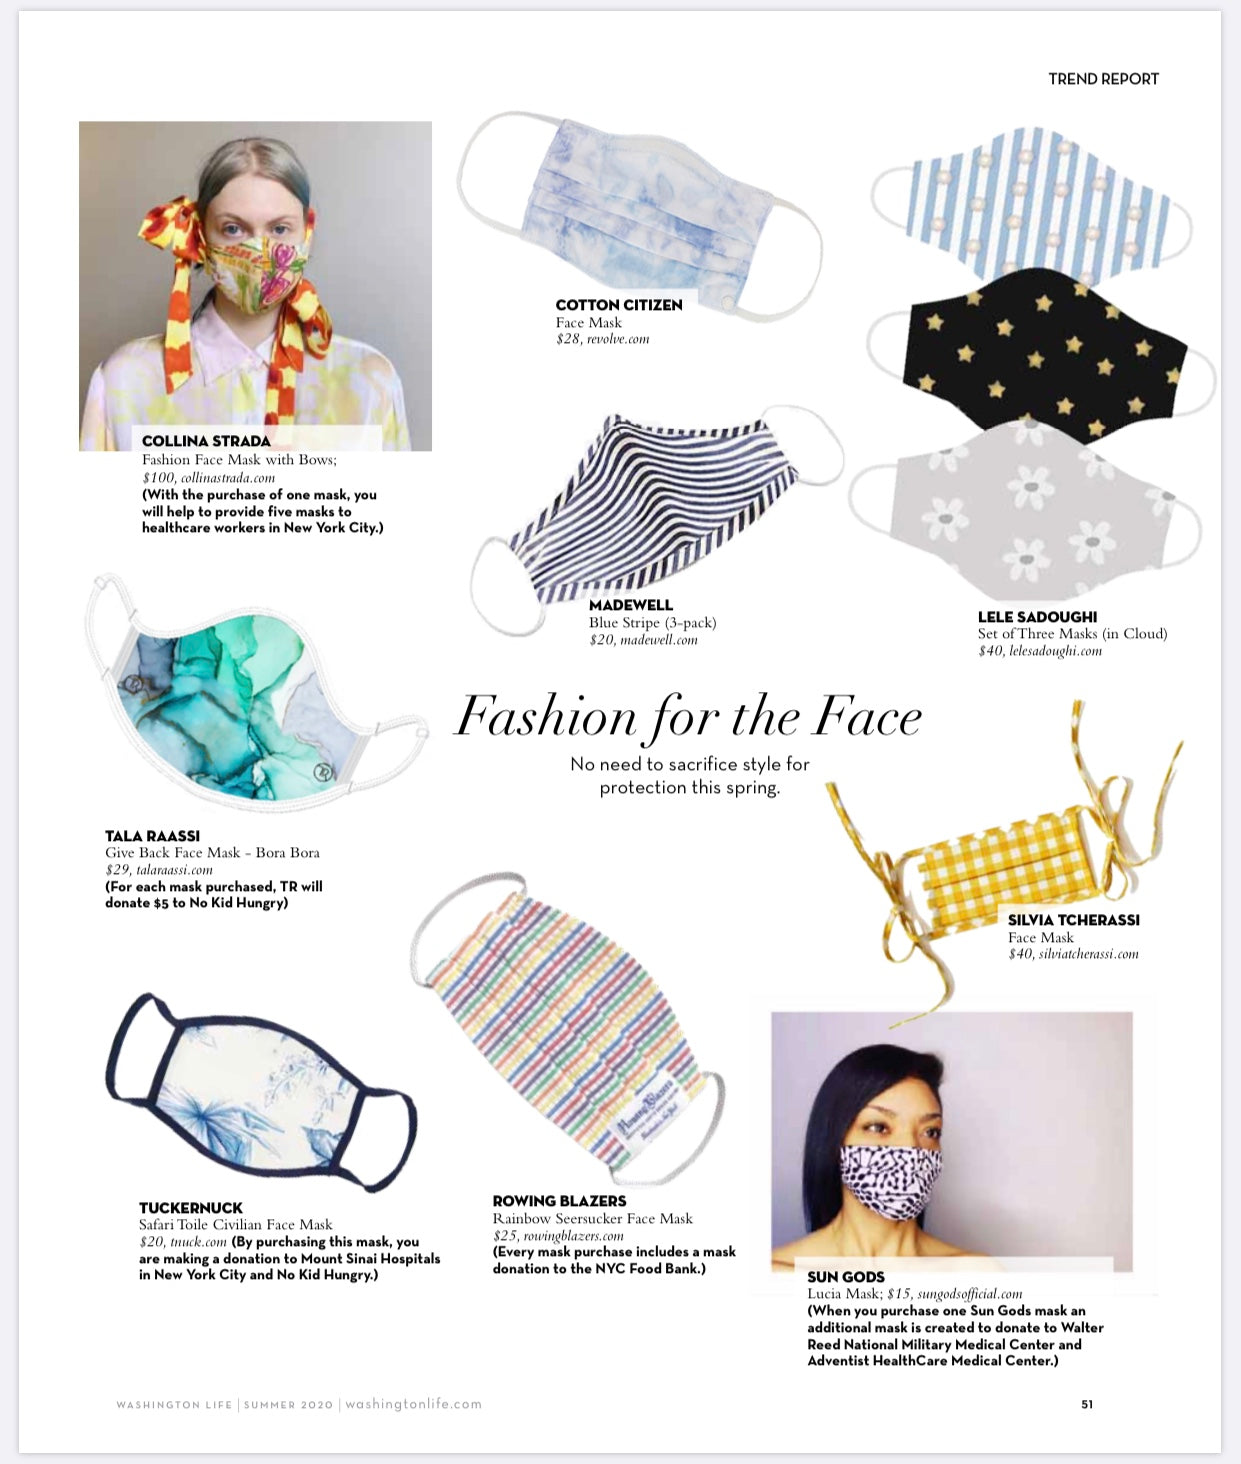 Washington Life Magazine Highlights SG Face Masks!